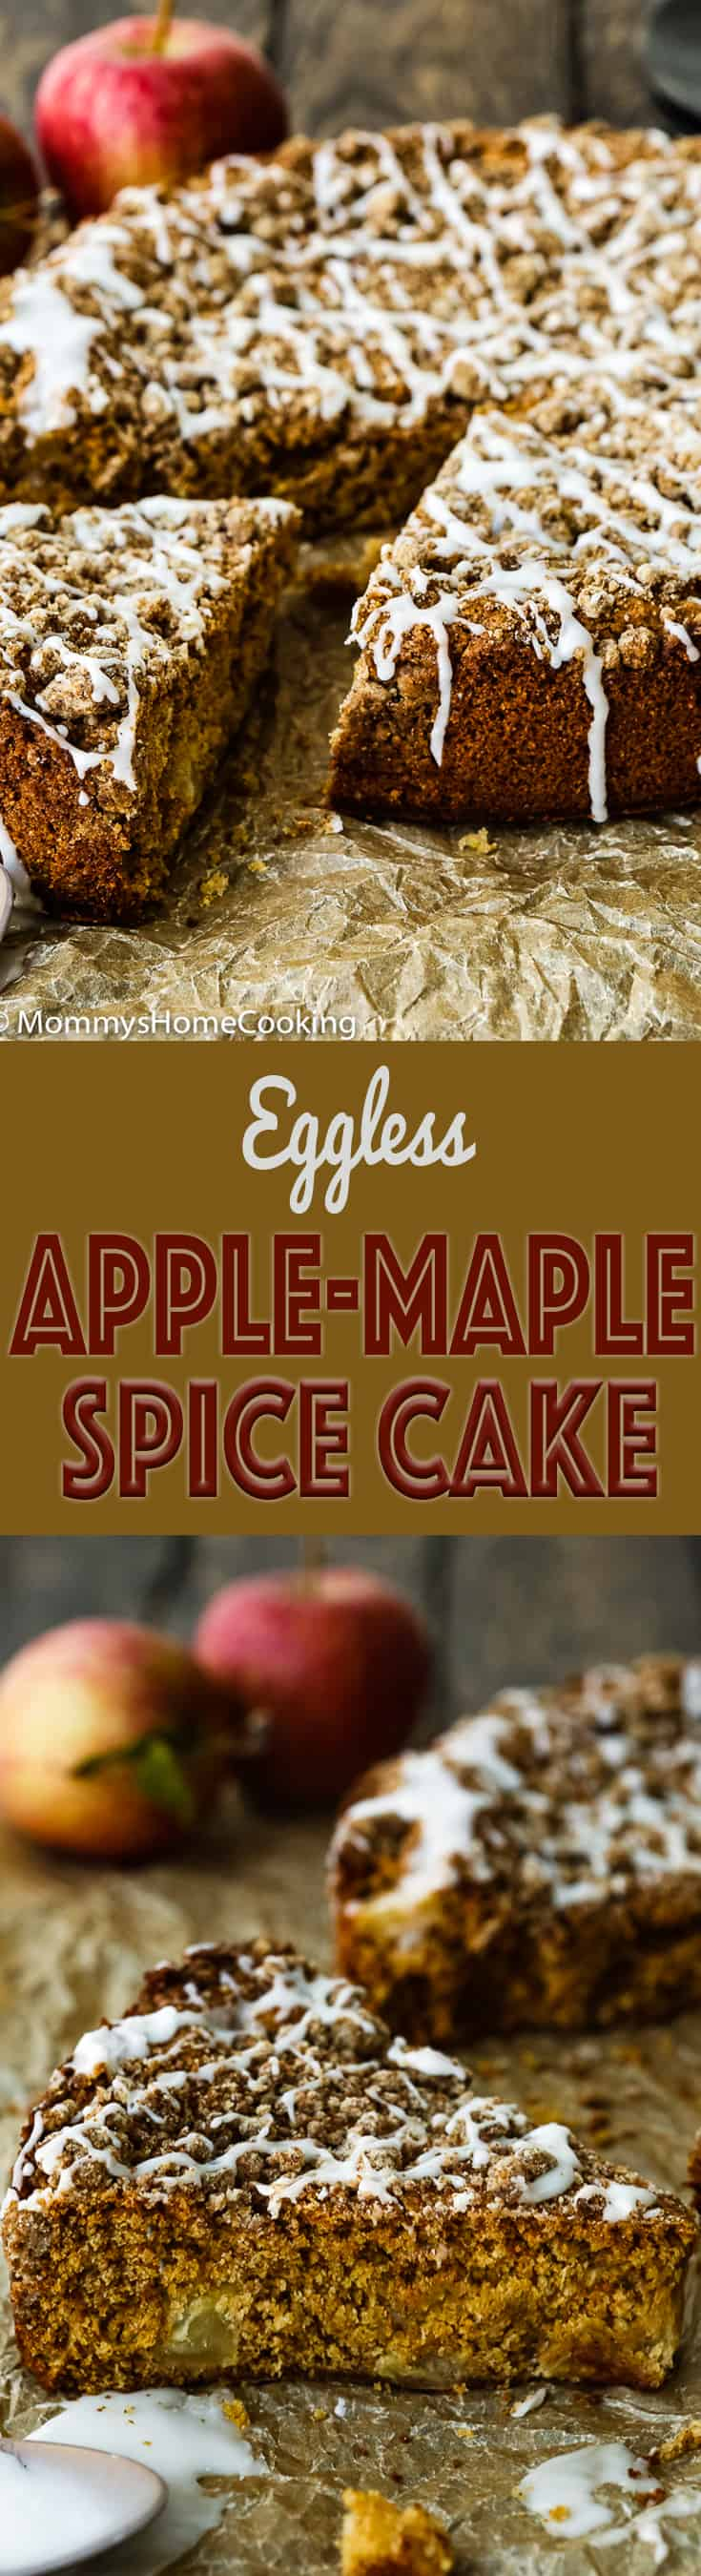 Get an A+ on kitchen duty with this Eggless Apple Maple Spice Cake!! It's really moist, tender, and tasty. Perfect for dessert or breakfast. http://mommyshomecooking.com